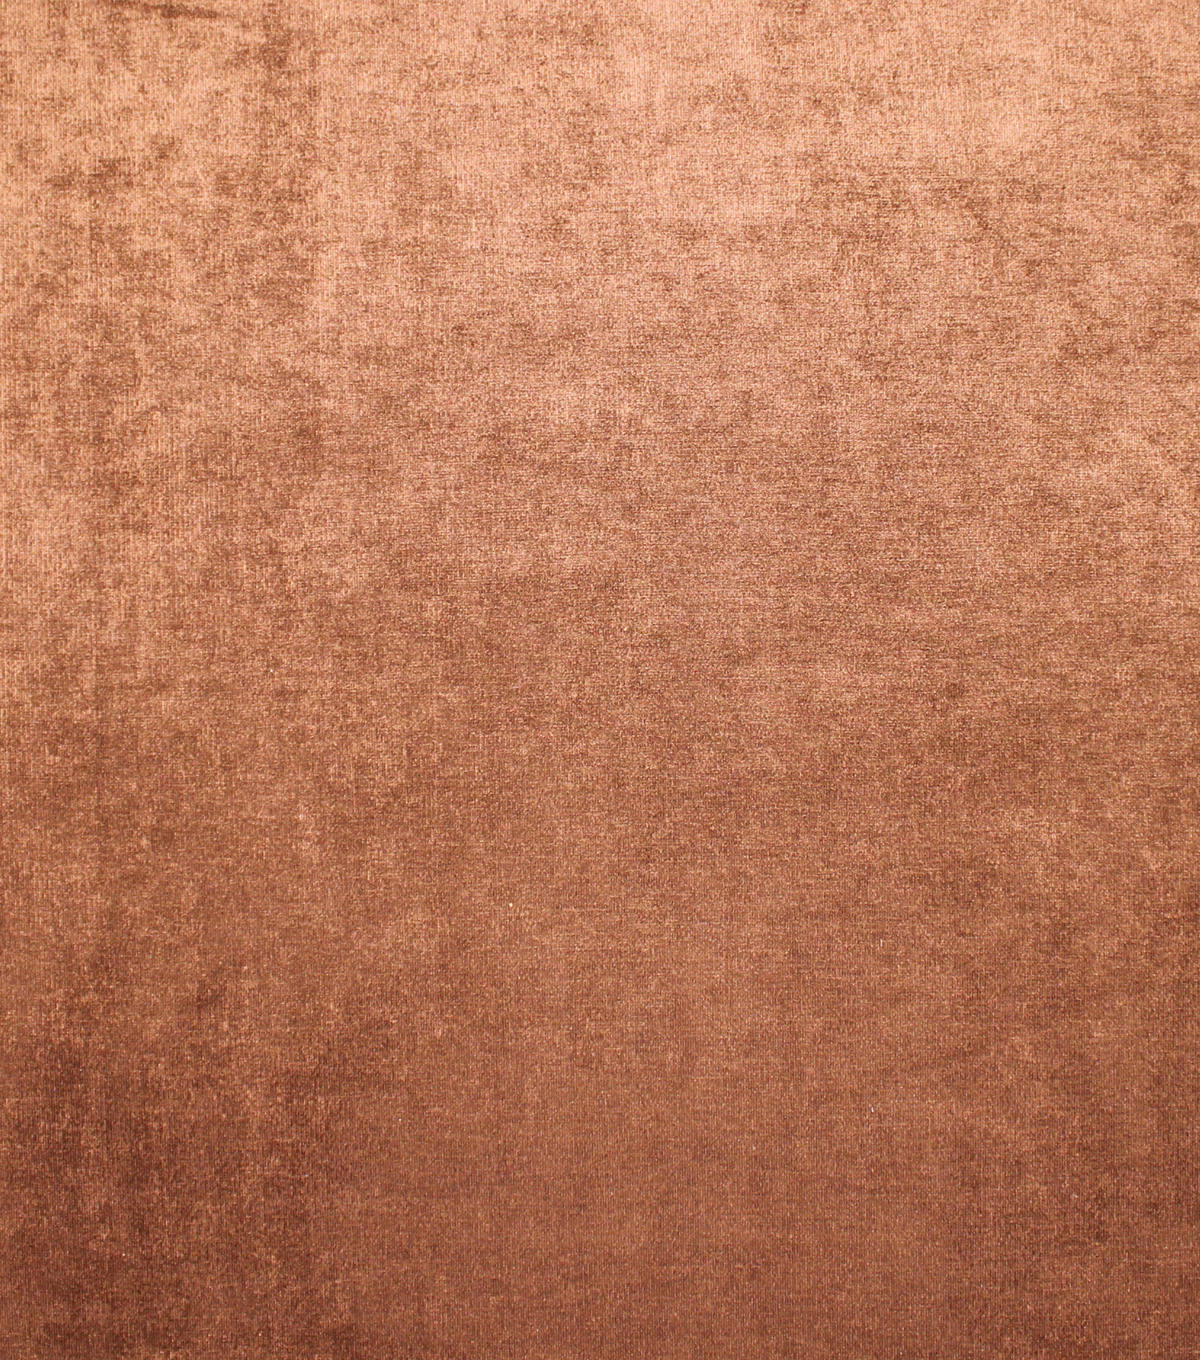 Home Decor 8\u0022x8\u0022 Fabric Swatch-Upholstery Fabric Barrow M8913-5359 Chestnut